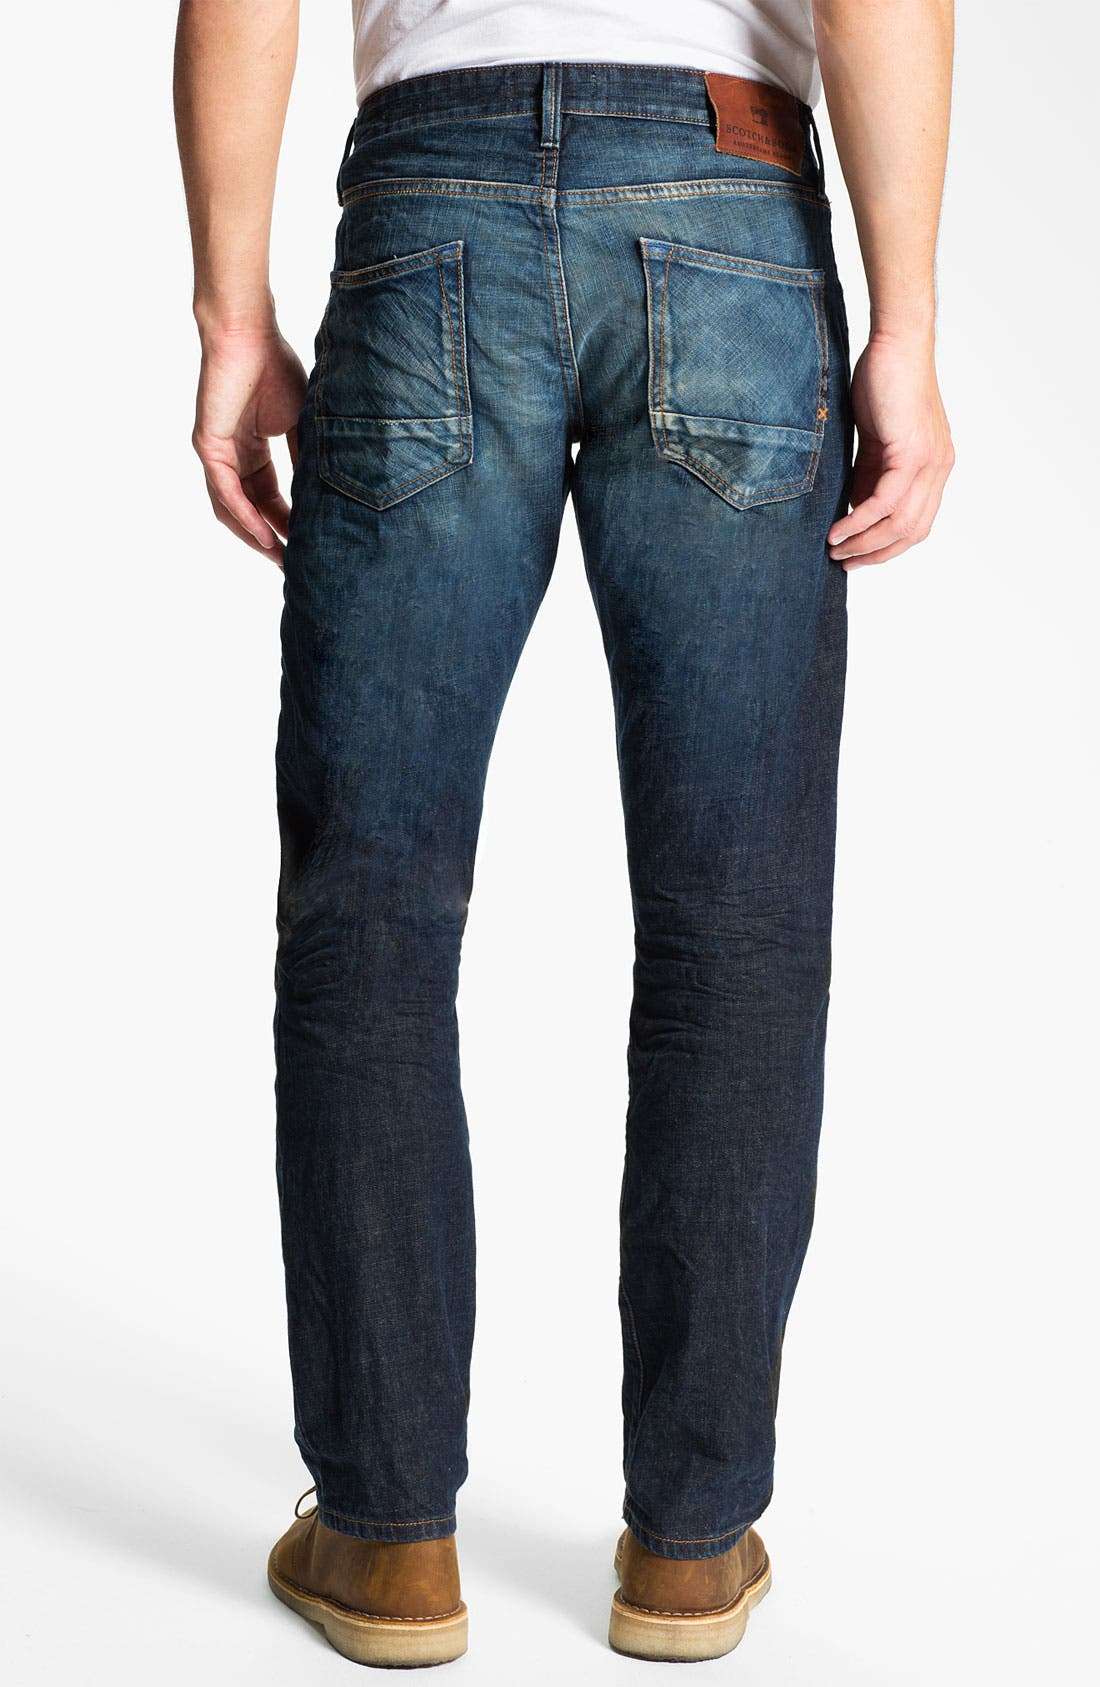 Alternate Image 1 Selected - Scotch & Soda 'Ralston' Slim Straight Leg Jeans (Blue Buzz)